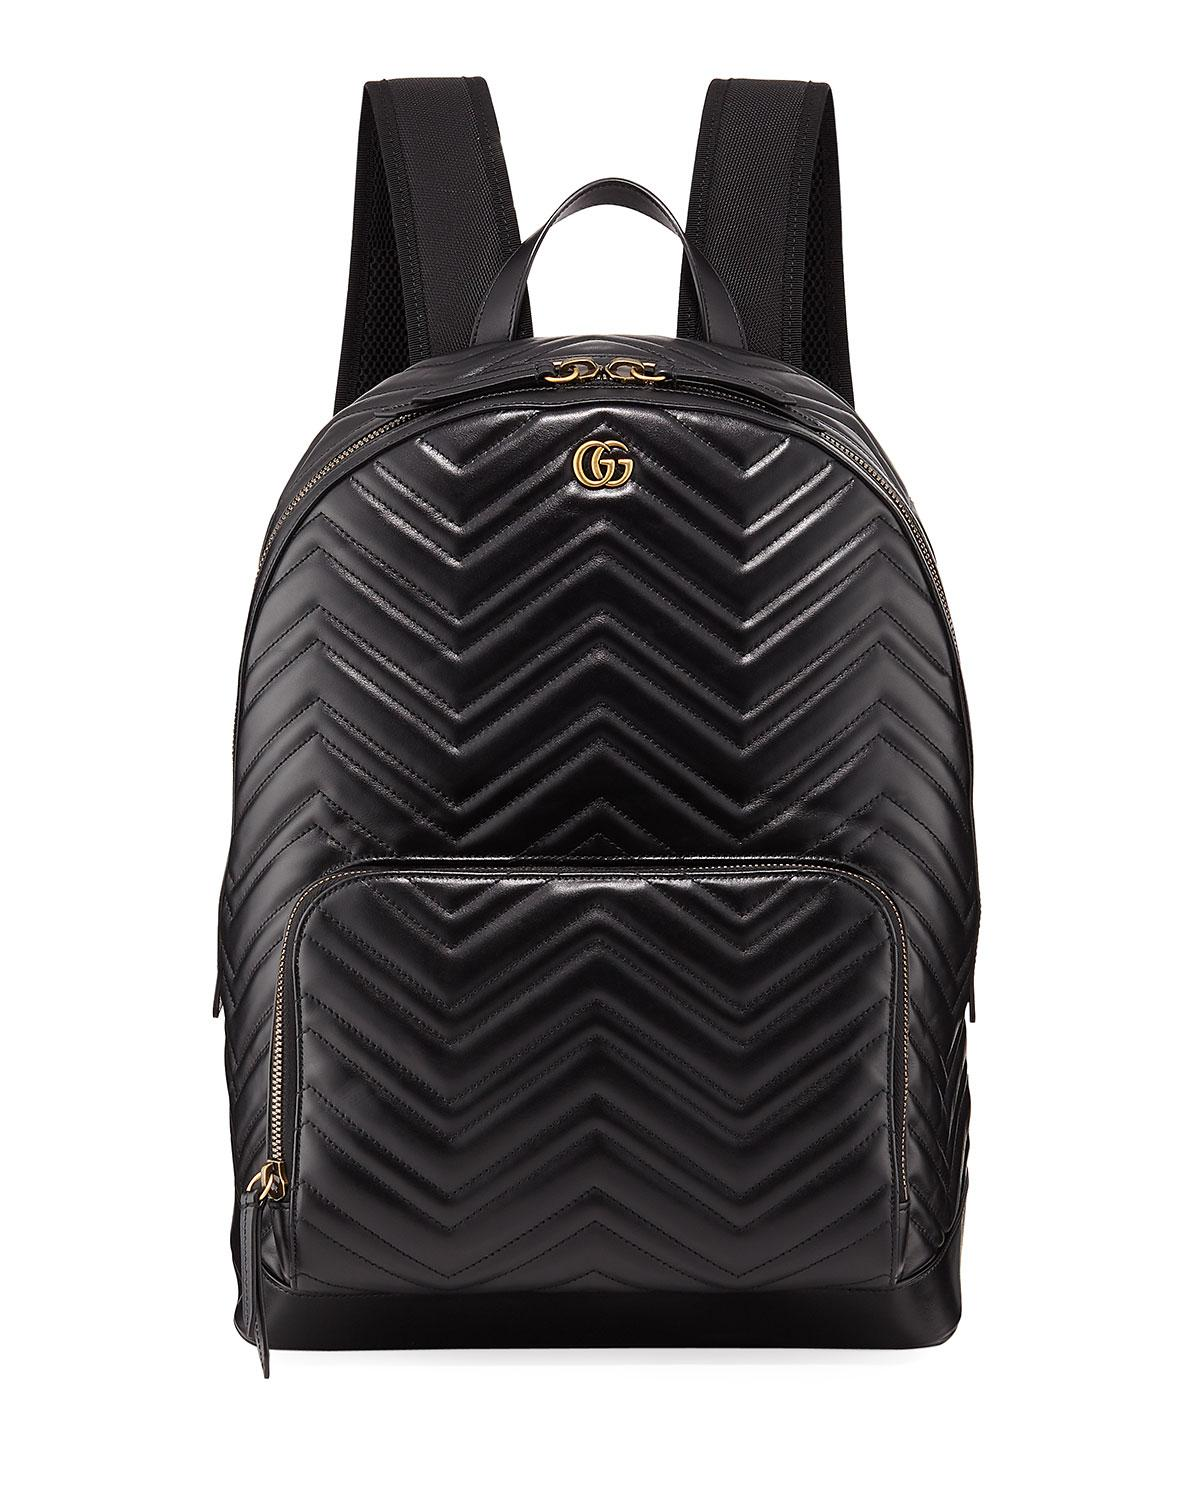 0d1ce221131e Gucci Black Backpack Mens – Patmo Technologies Limited